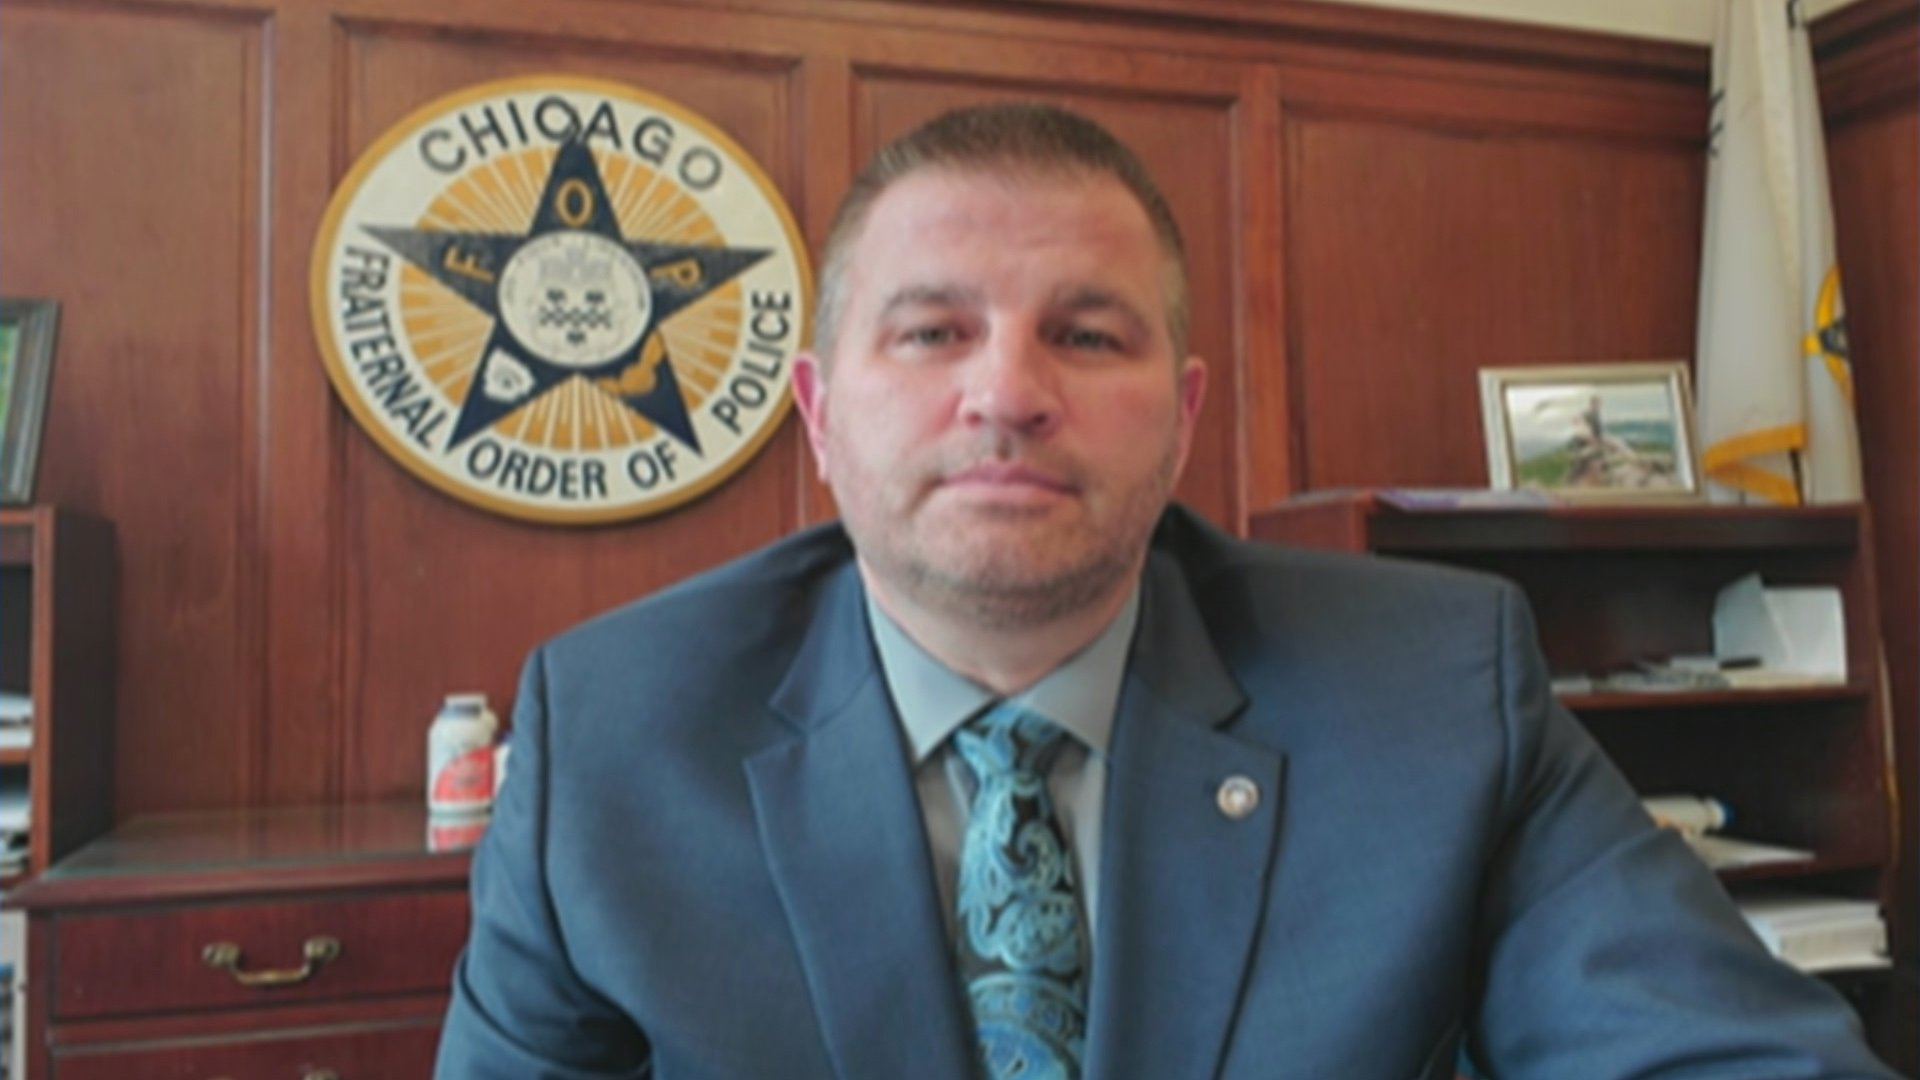 City Council Supermajority Urges Chicago Police Union President to Resign